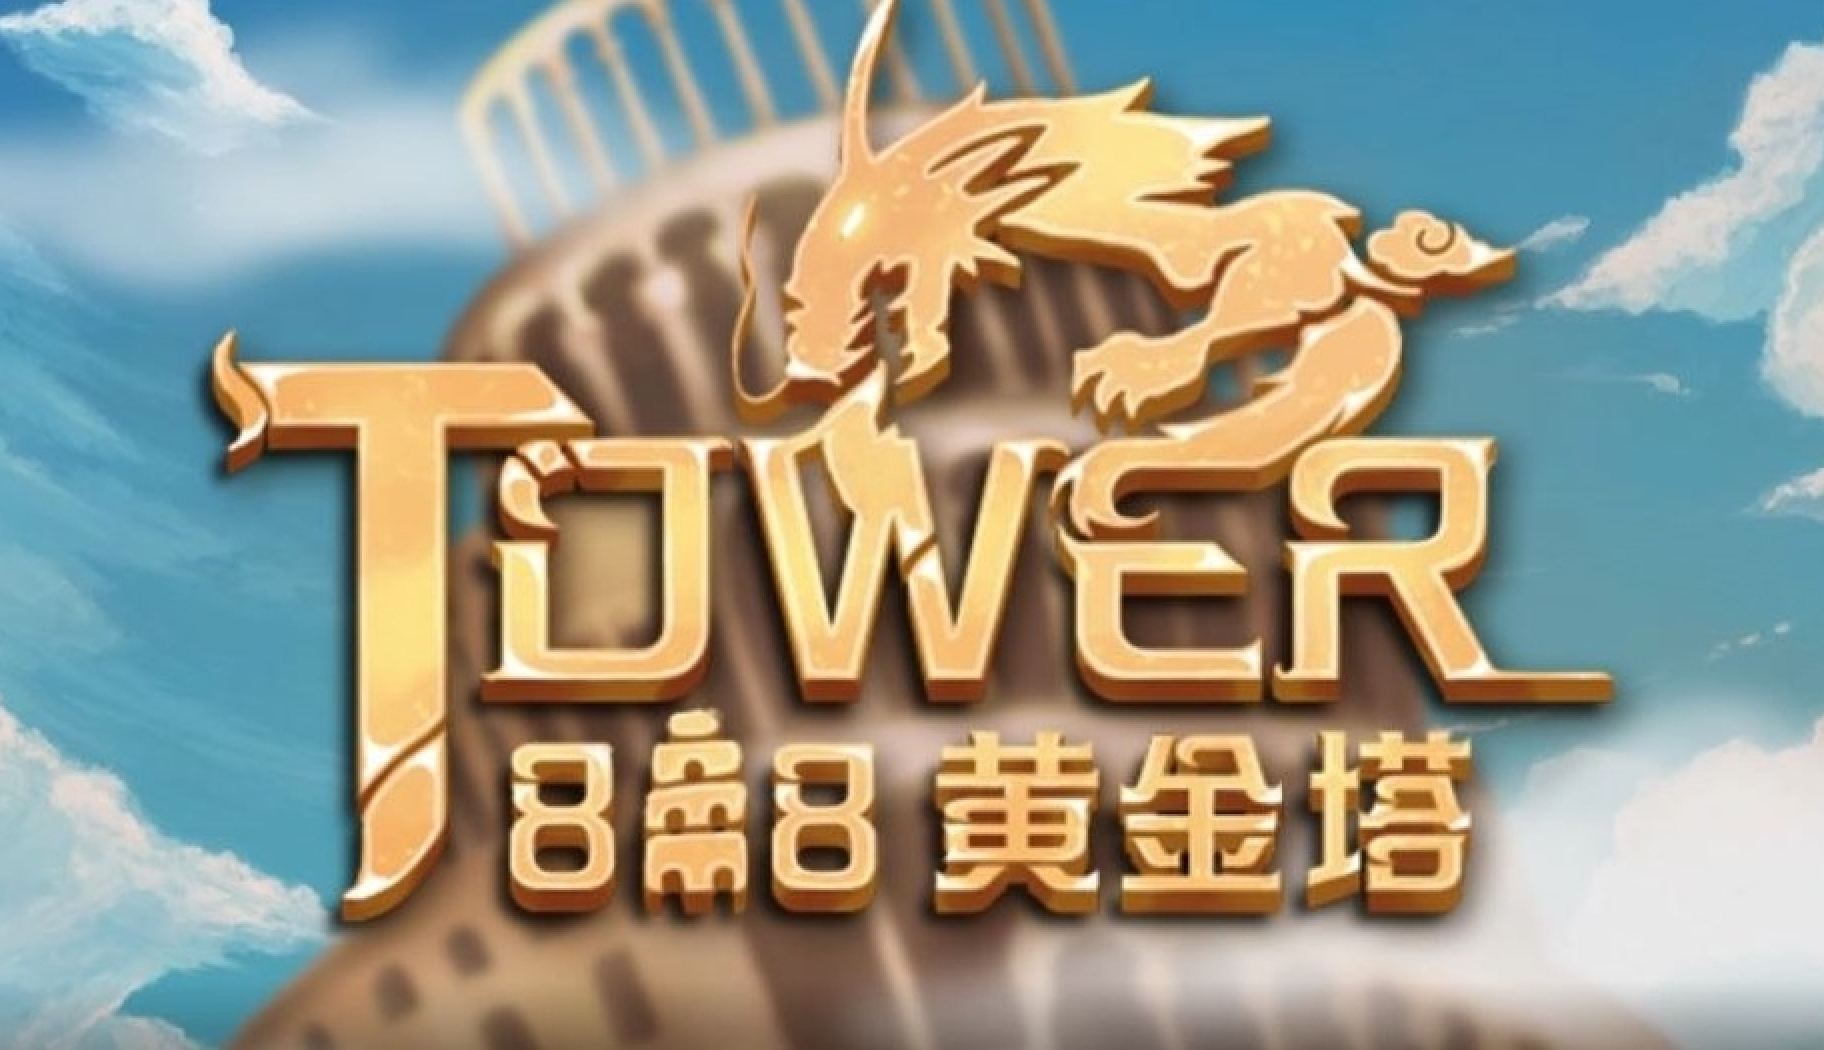 Se 888 Tower Online Slot Demo Game, AllWaySpin